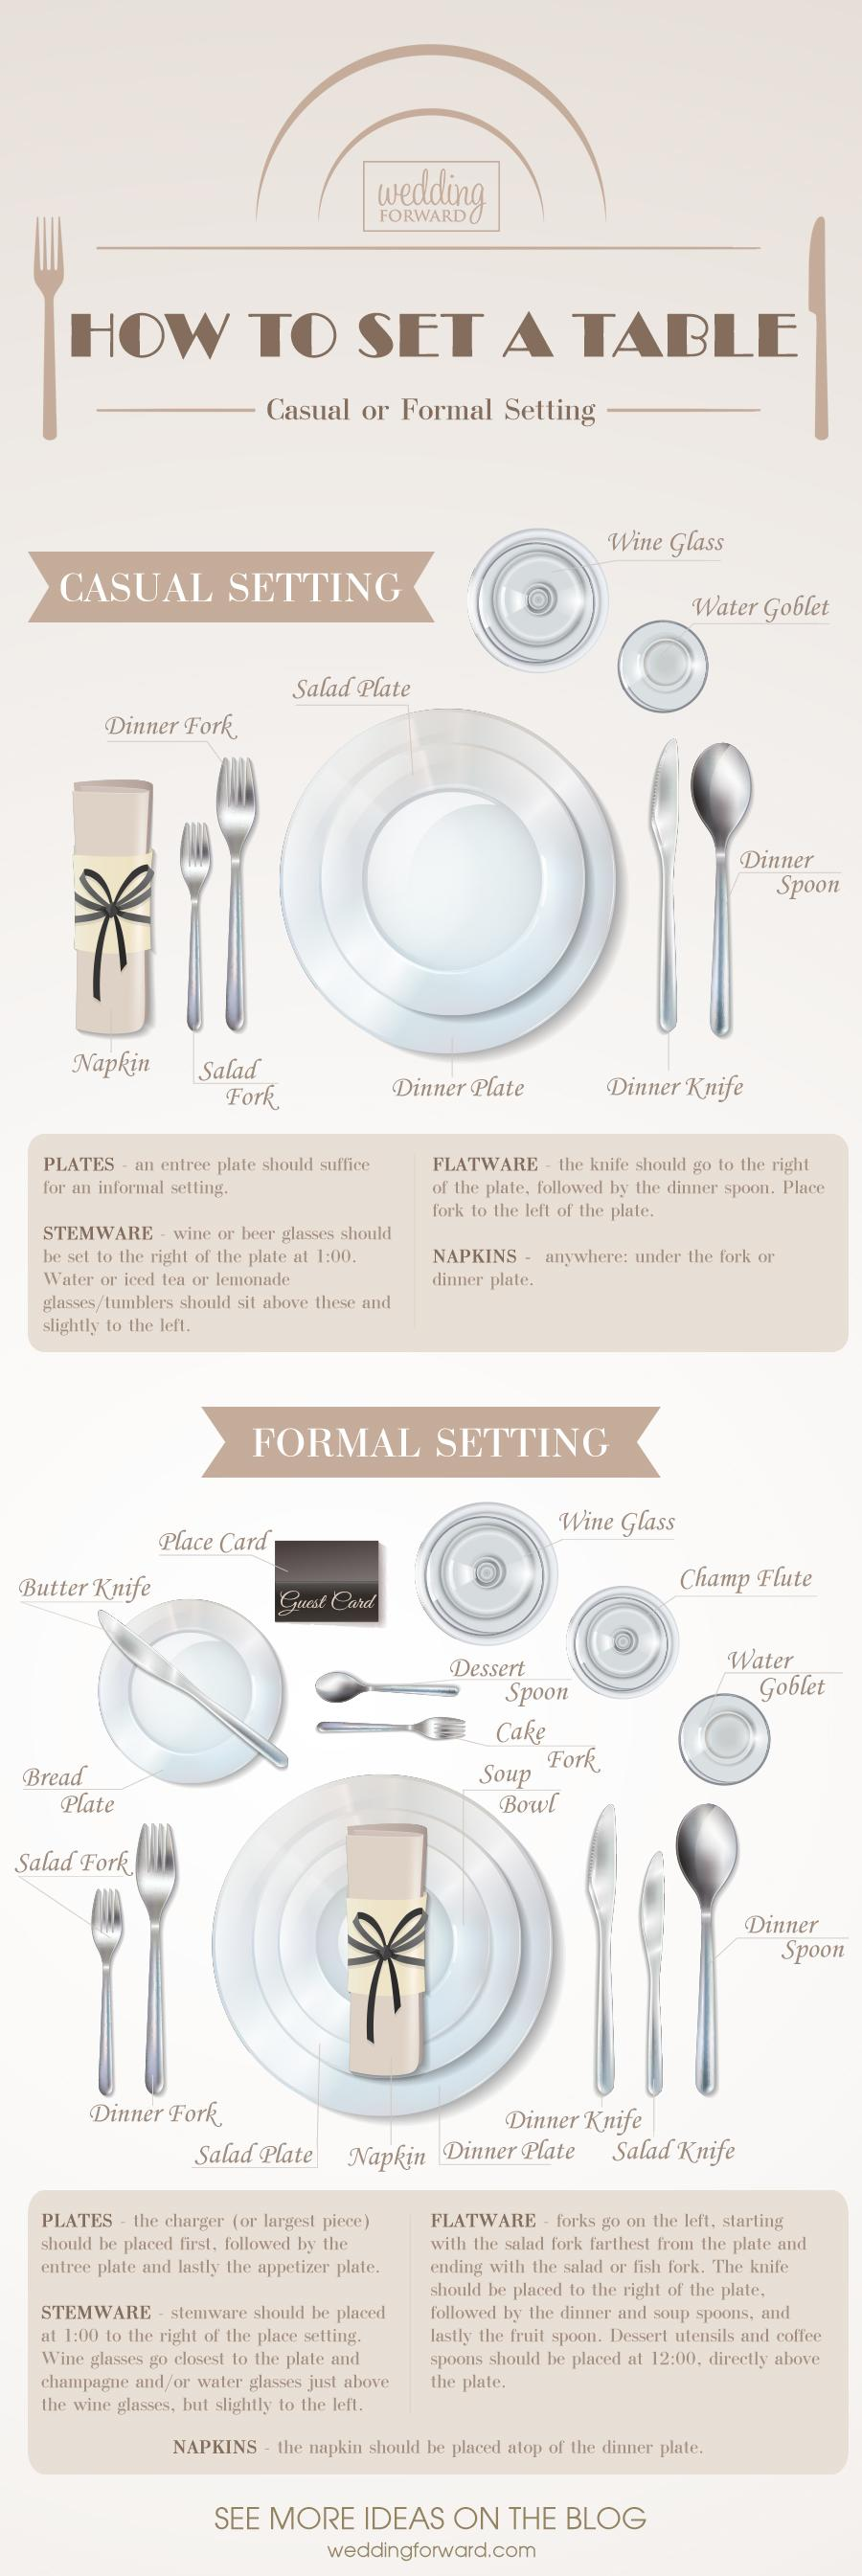 how to set a table casual formal setting wedding tips ideas